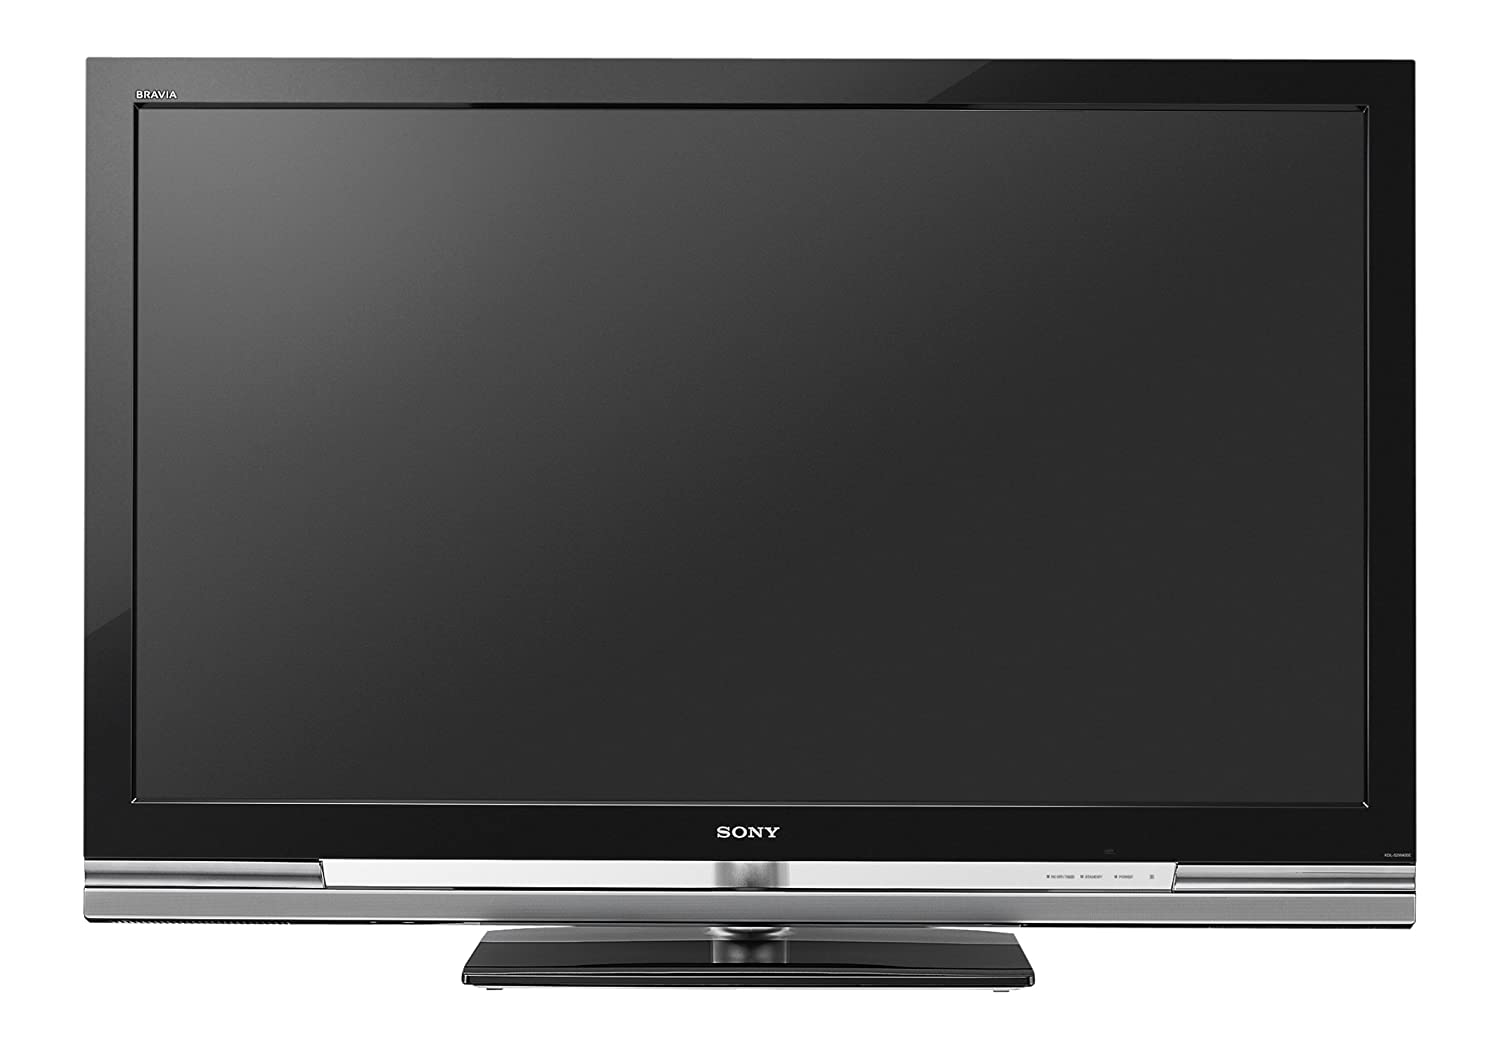 sony bravia 52 user manual product user guide instruction u2022 rh firstfidelity us Sony Operating Manuals sony led user manual